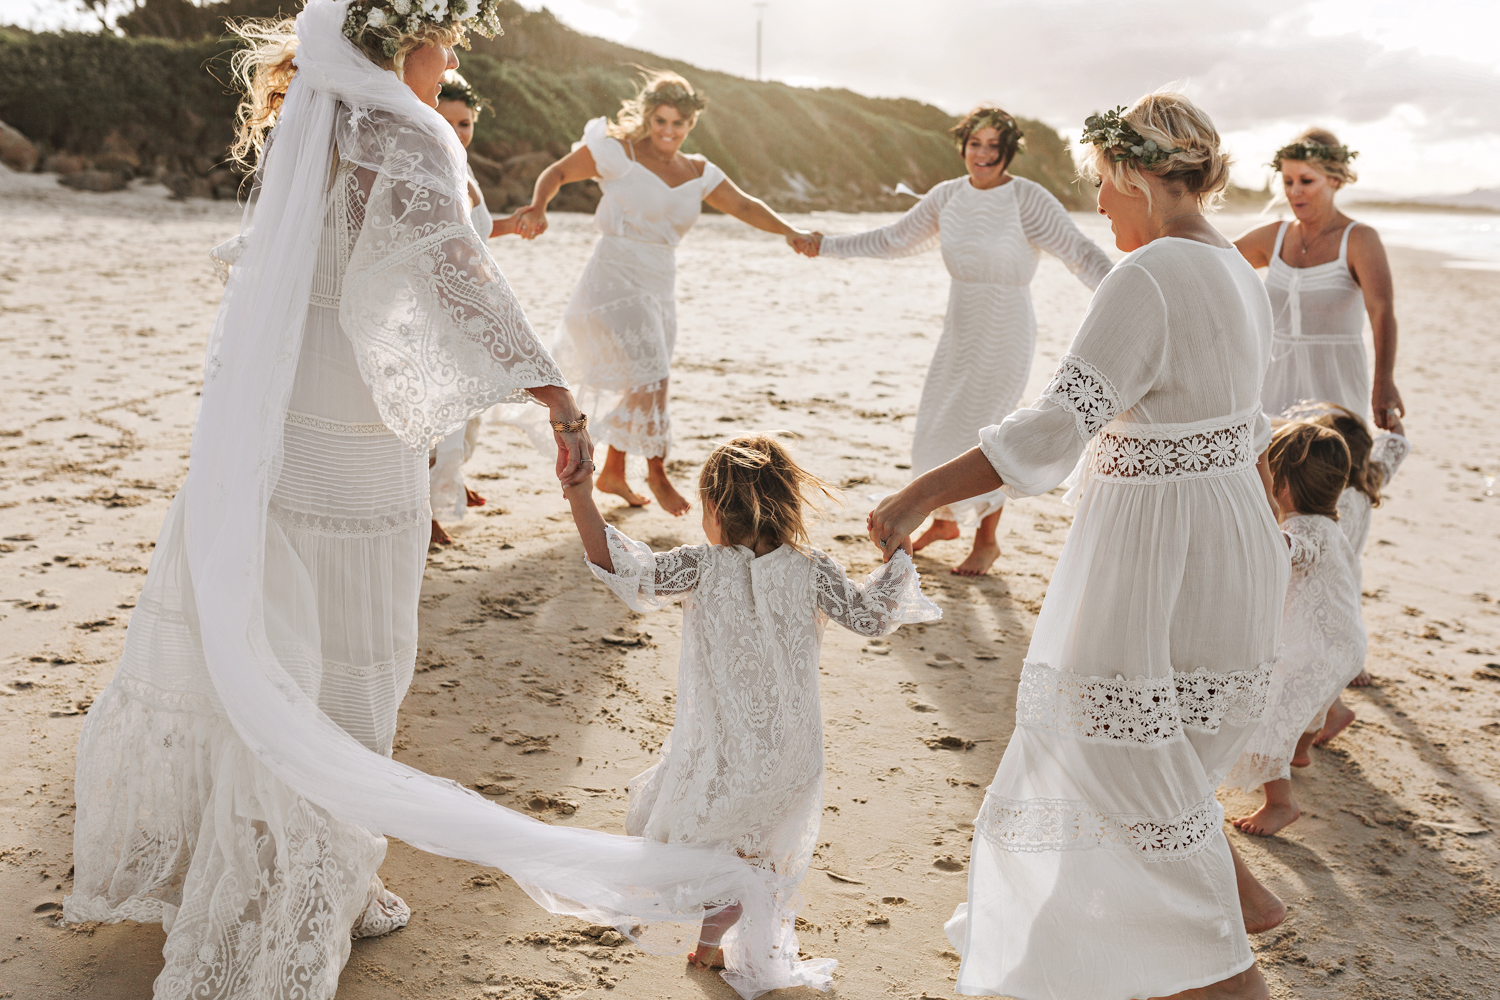 Bridesmaids and flowergirls dance on beach in relaxed wedding in